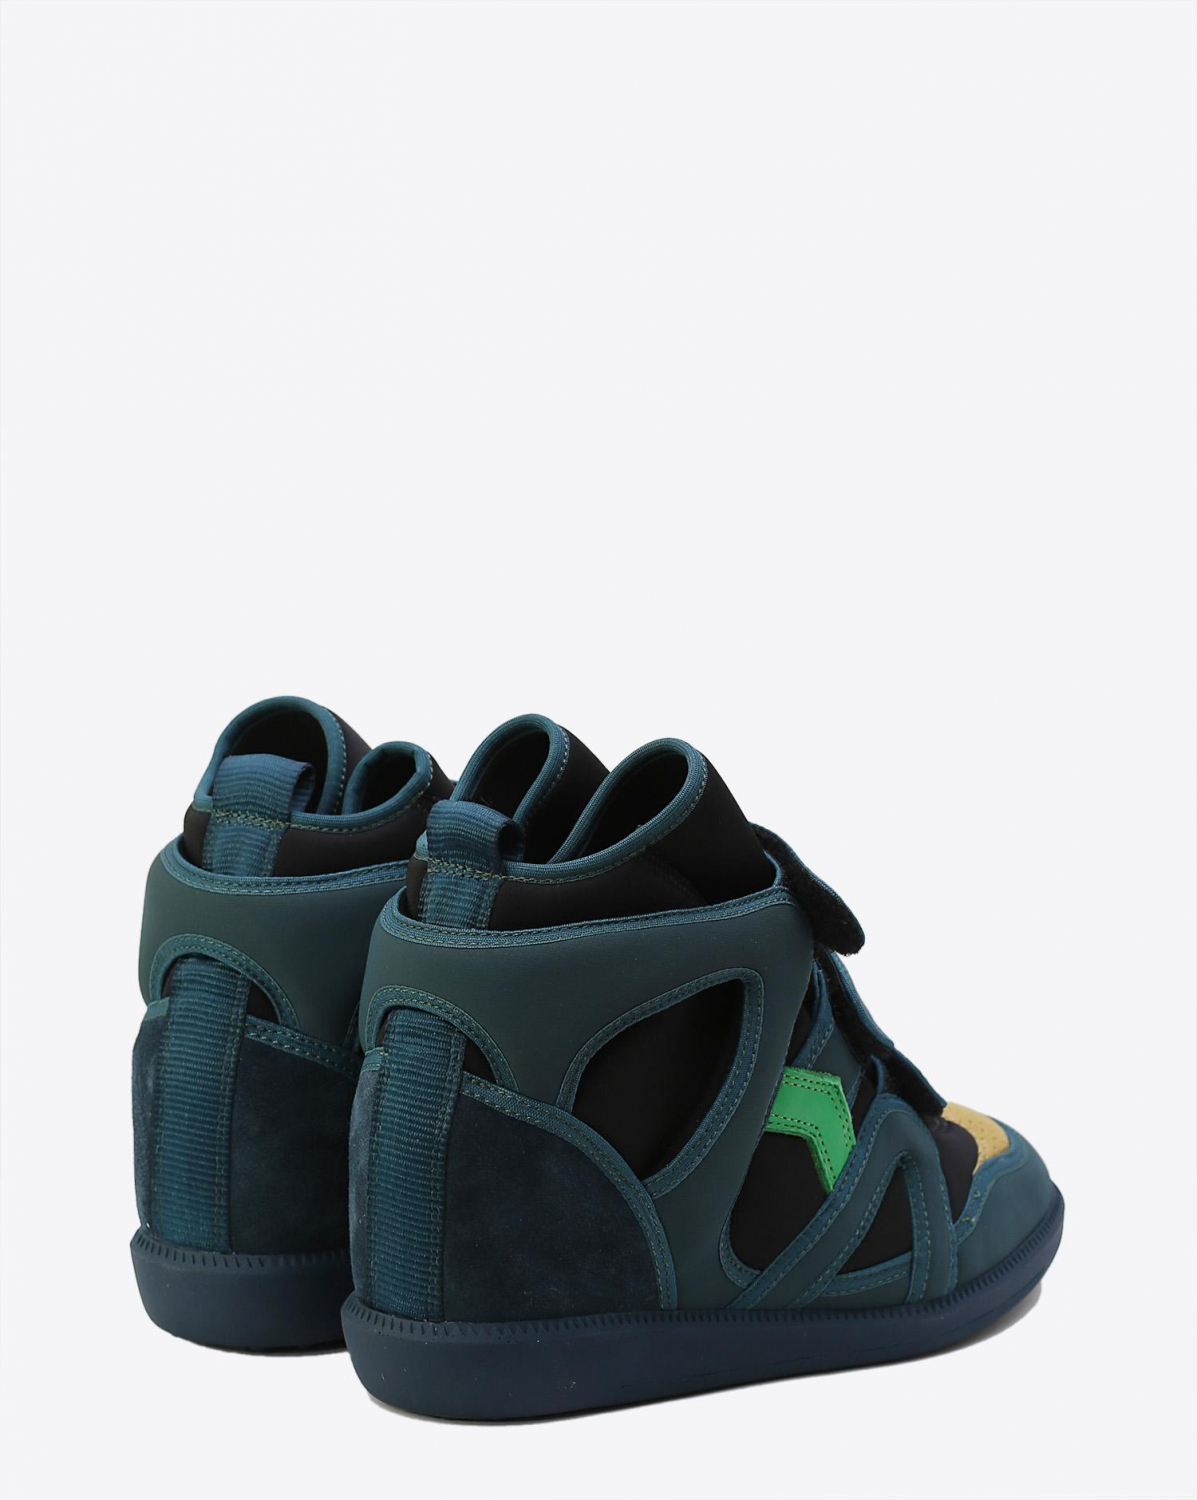 Isabel Marant Chaussures Défilé Sneakers BUCKEE - Green